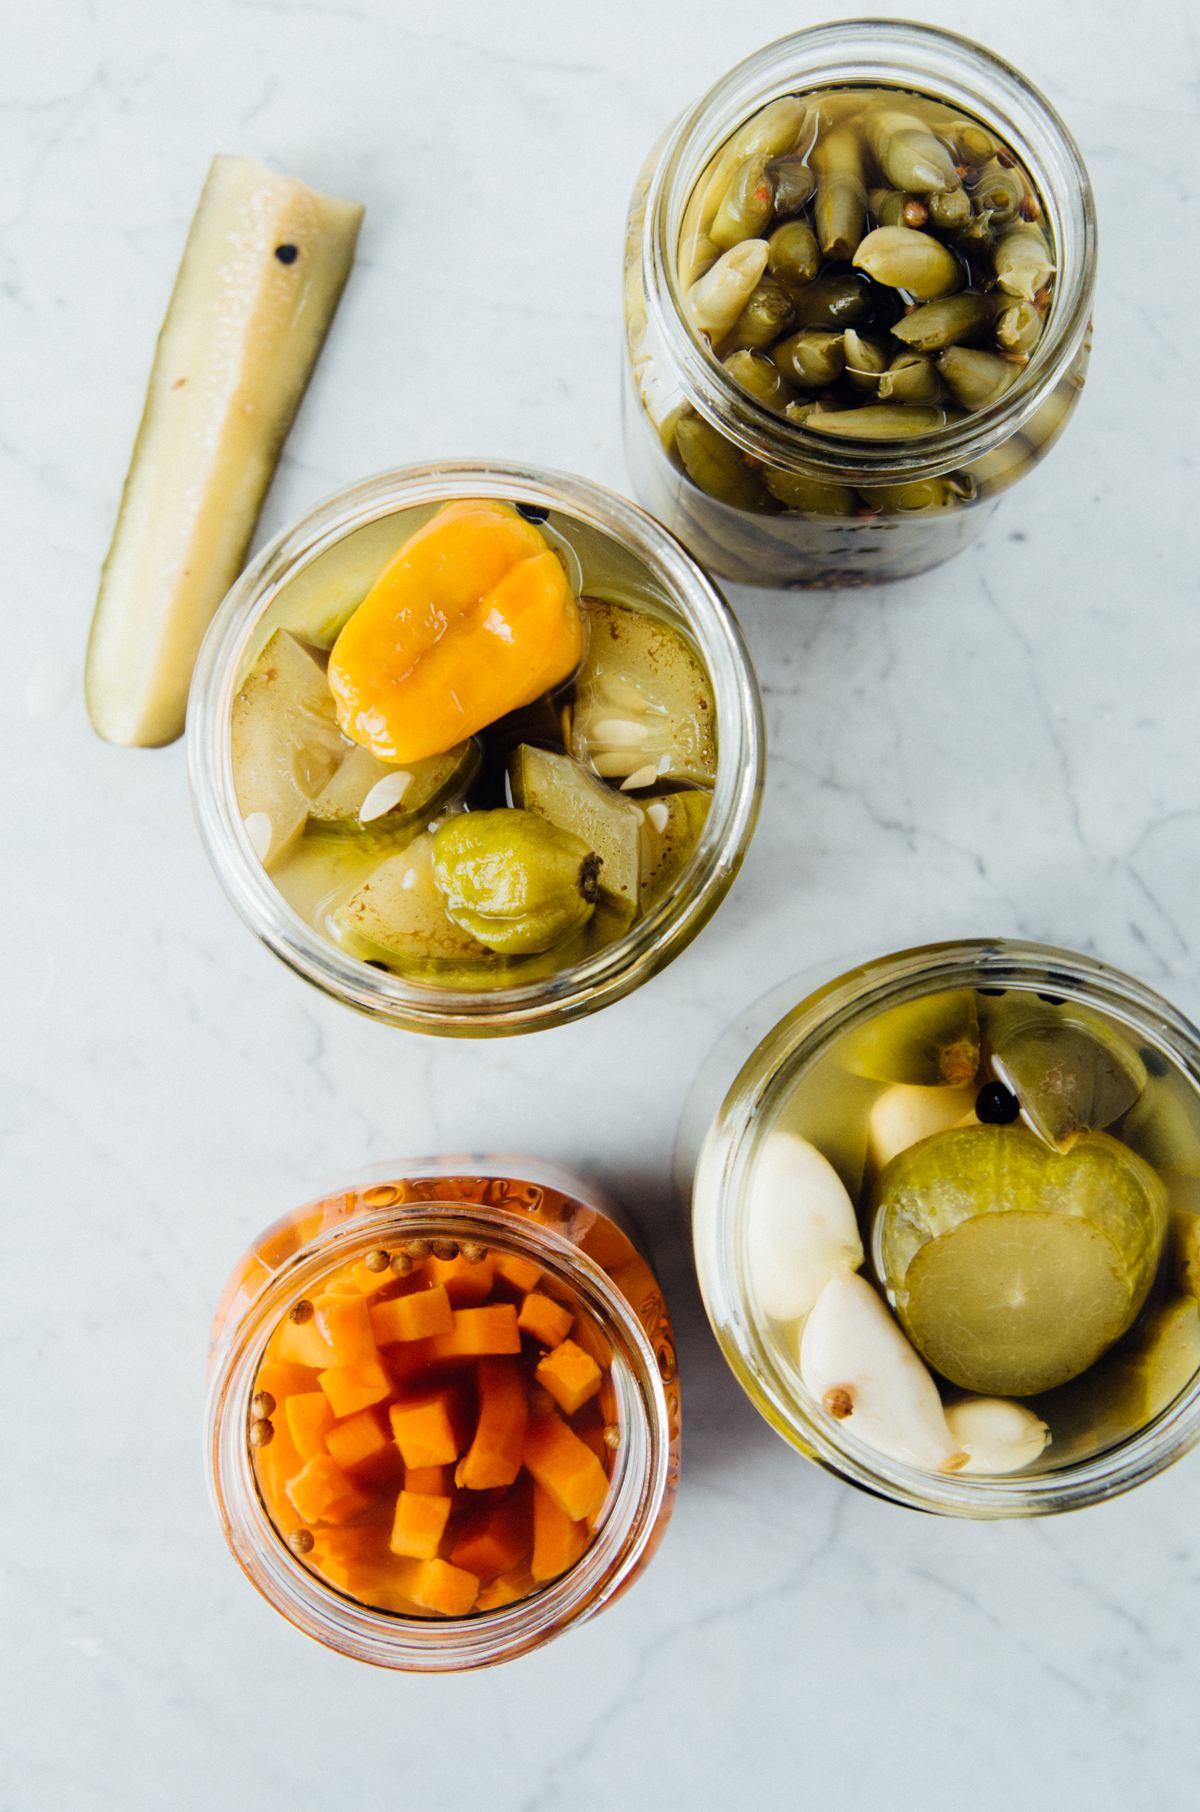 No more soggy, neon yellow, mass-produced pickles...bold flavors, spices & lots of crunch instead.